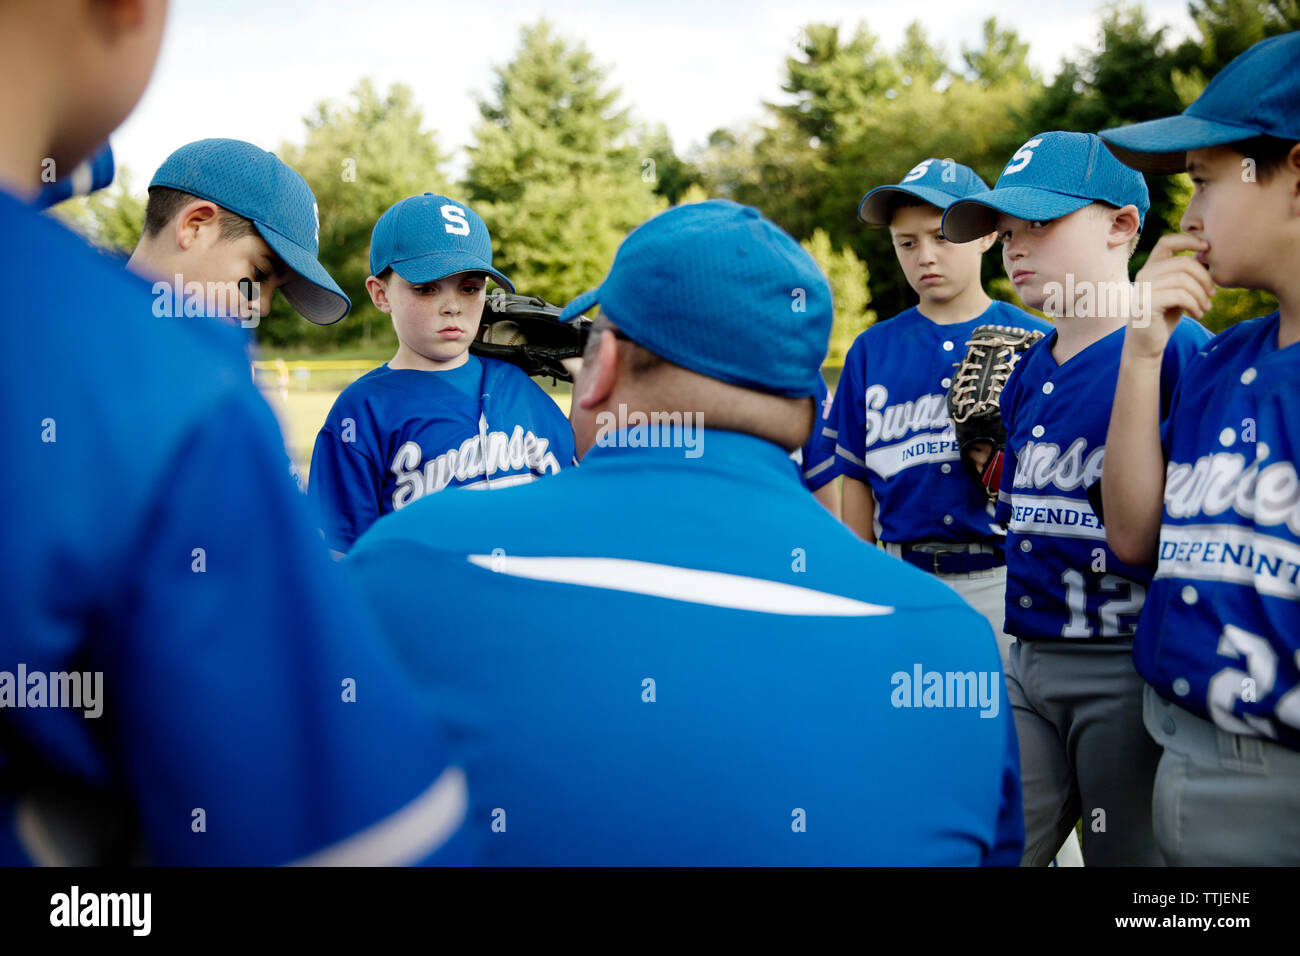 Coach guiding baseball players on field - Stock Image